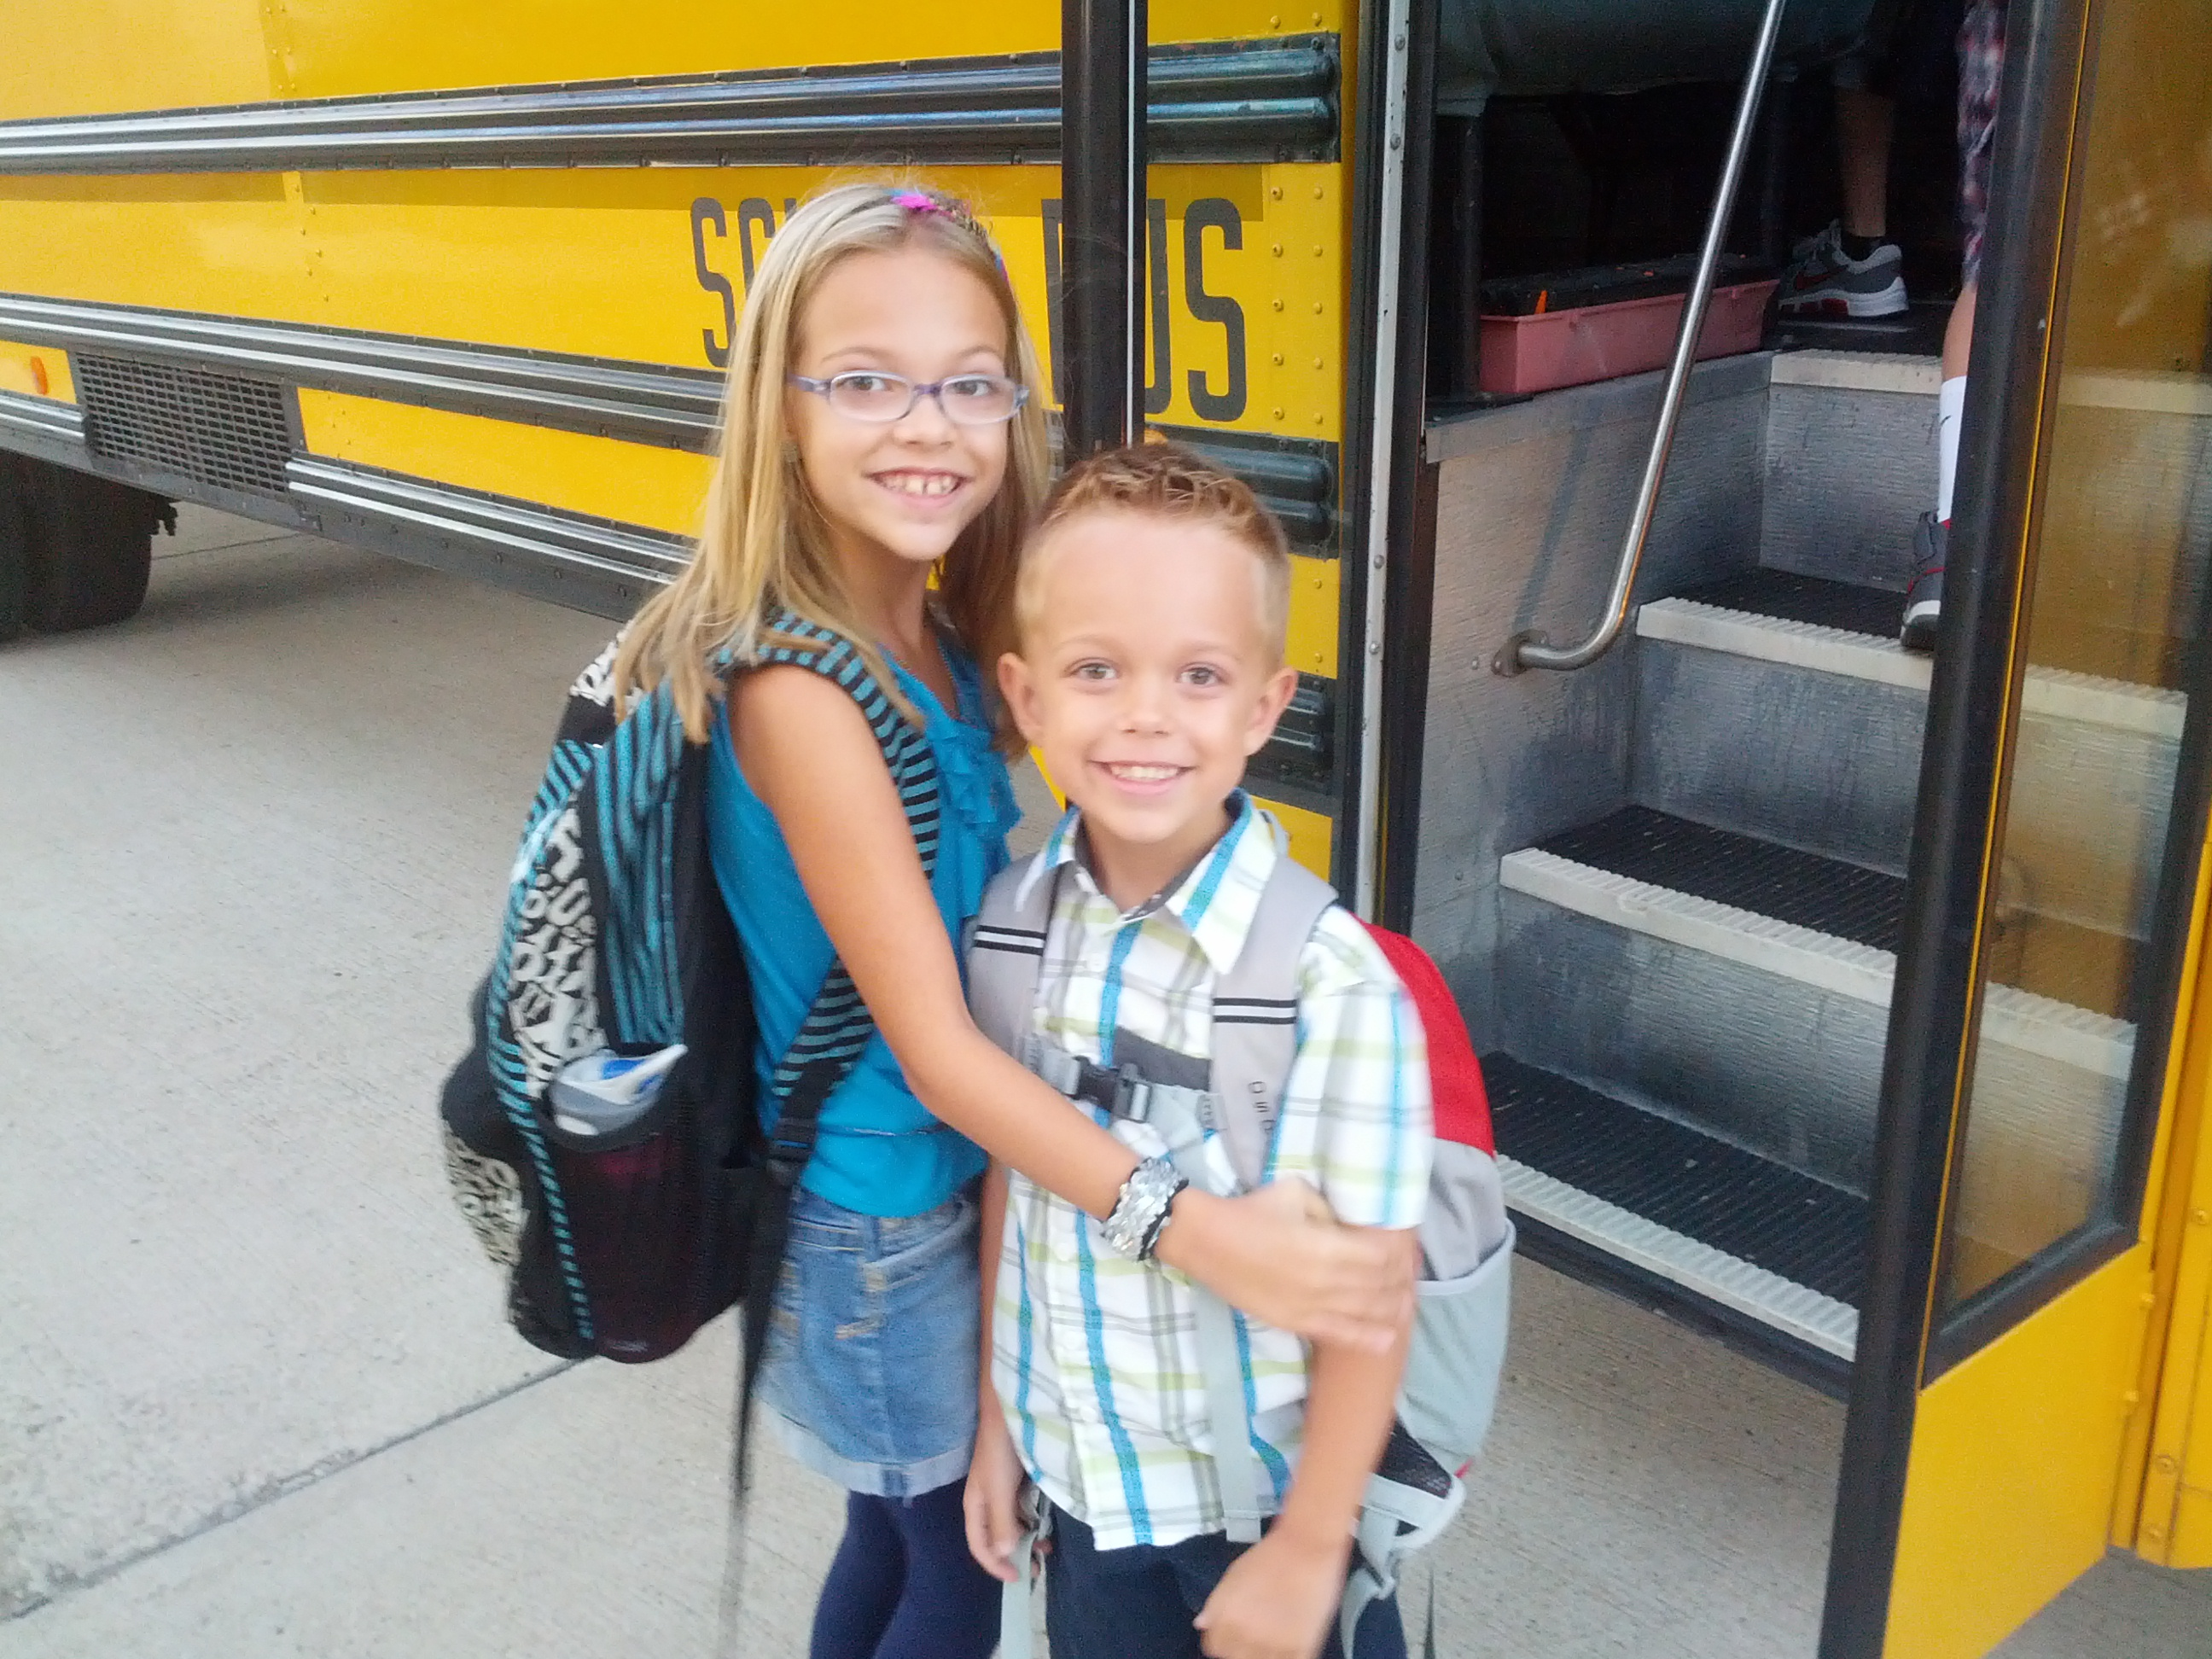 Hannah & Evan about to ride the school bus for the first time!